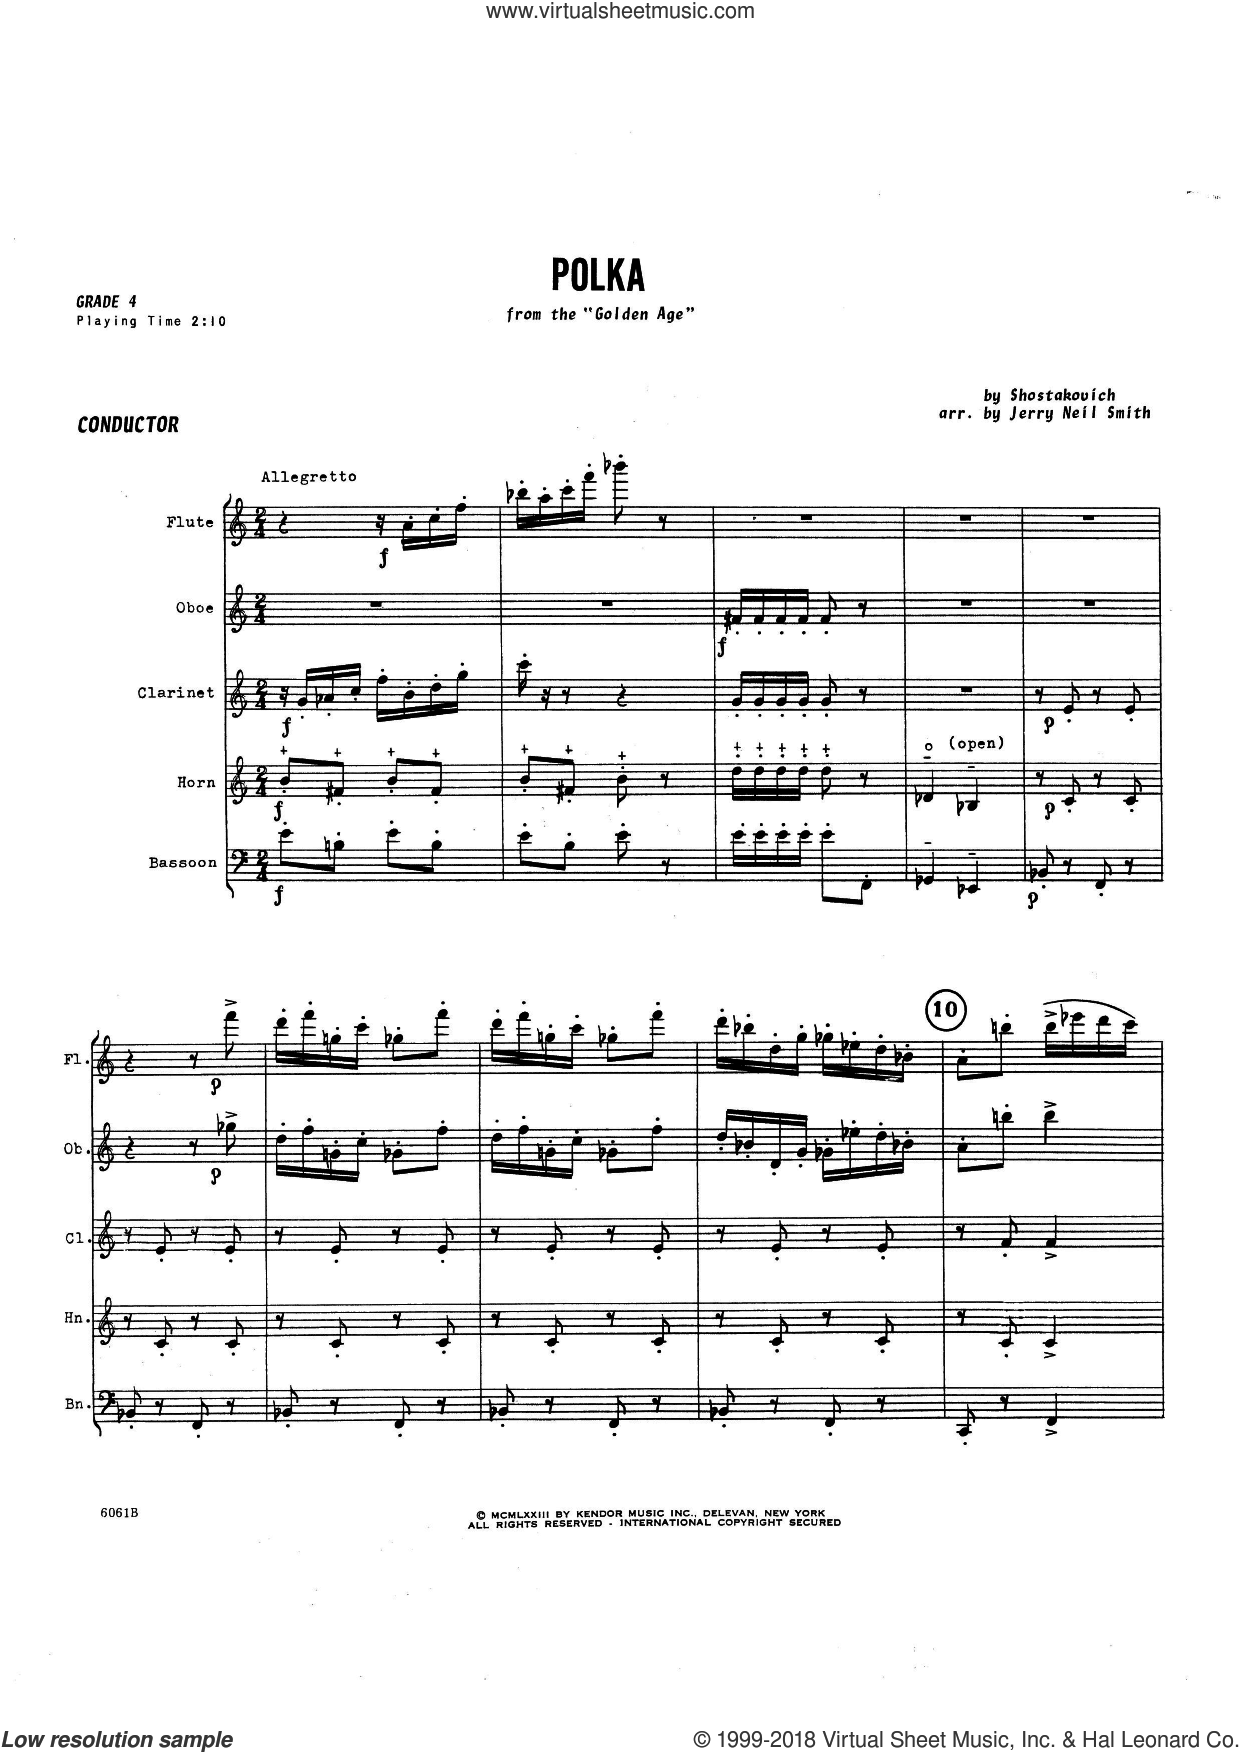 Polka (COMPLETE) sheet music for wind ensemble by Jerry Smith and Dmitri Shostakovich, intermediate skill level